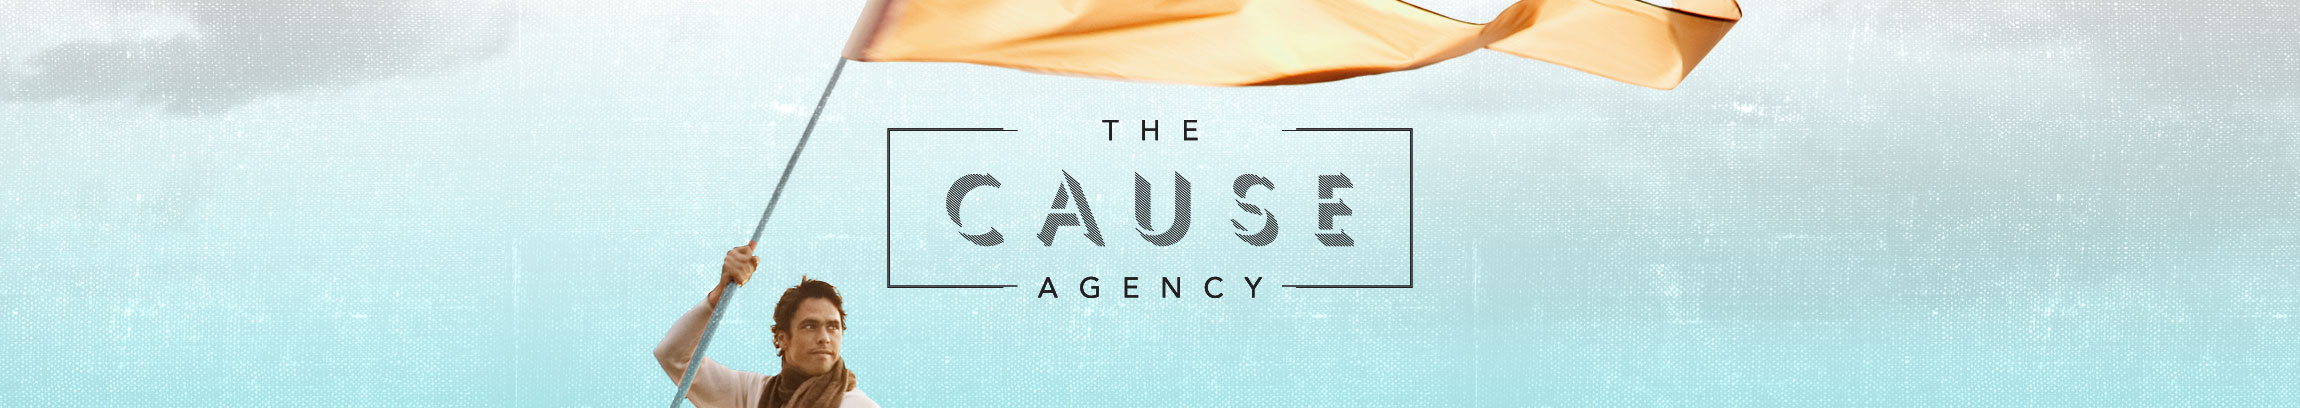 The Cause Agency